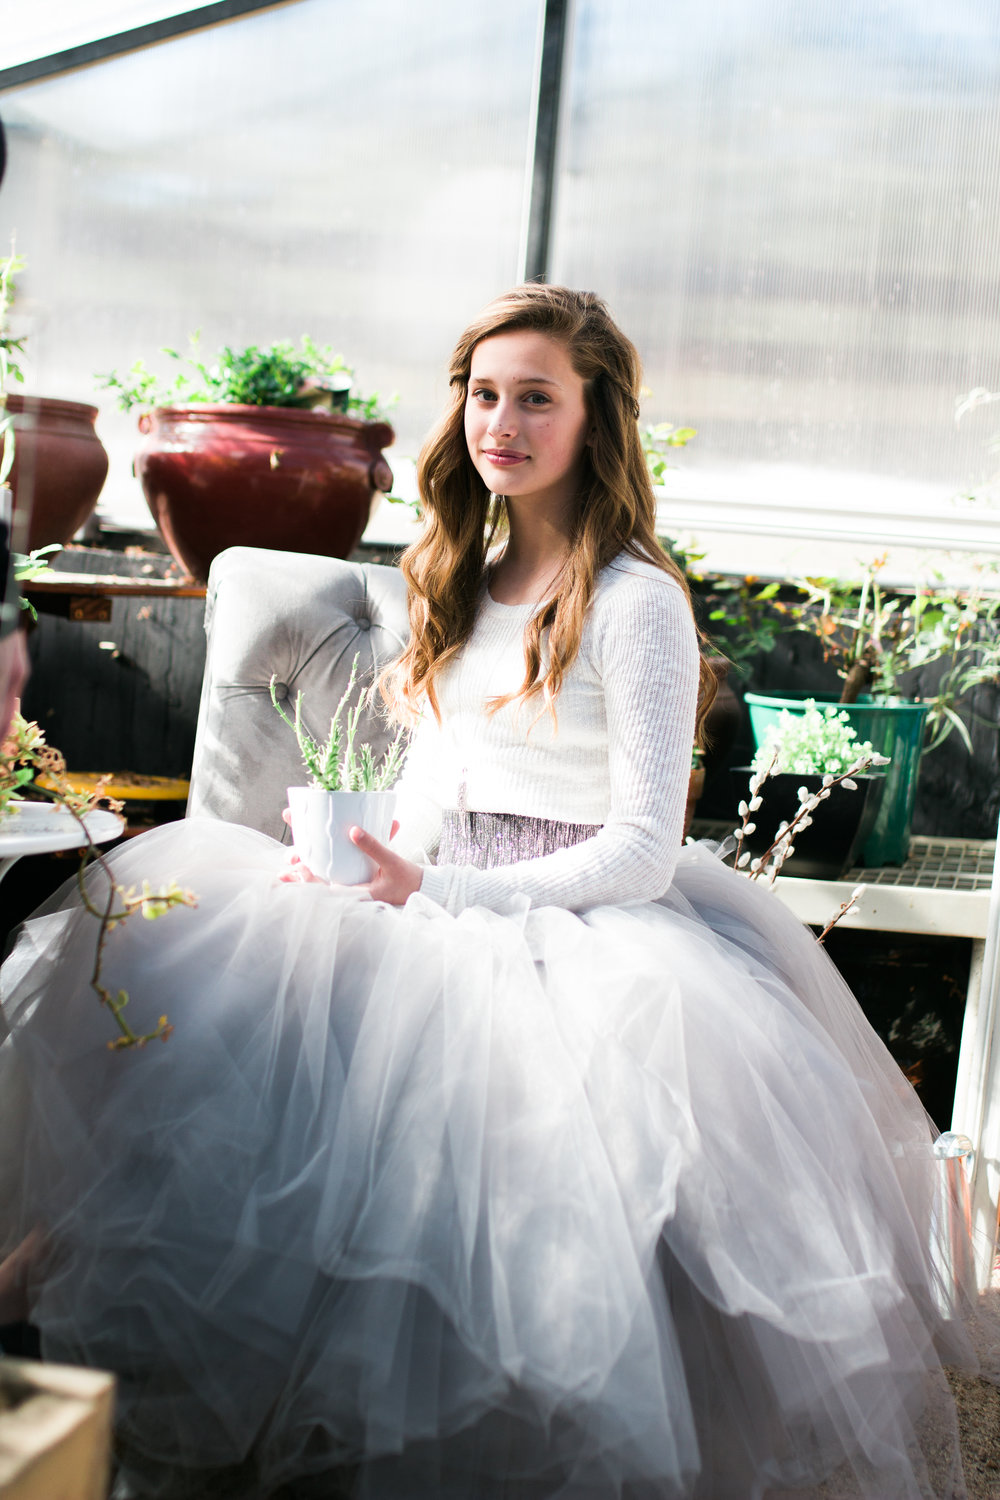 A teenage girl is sitting in a chair wearing a grey tulle skirt in a greenhouse.